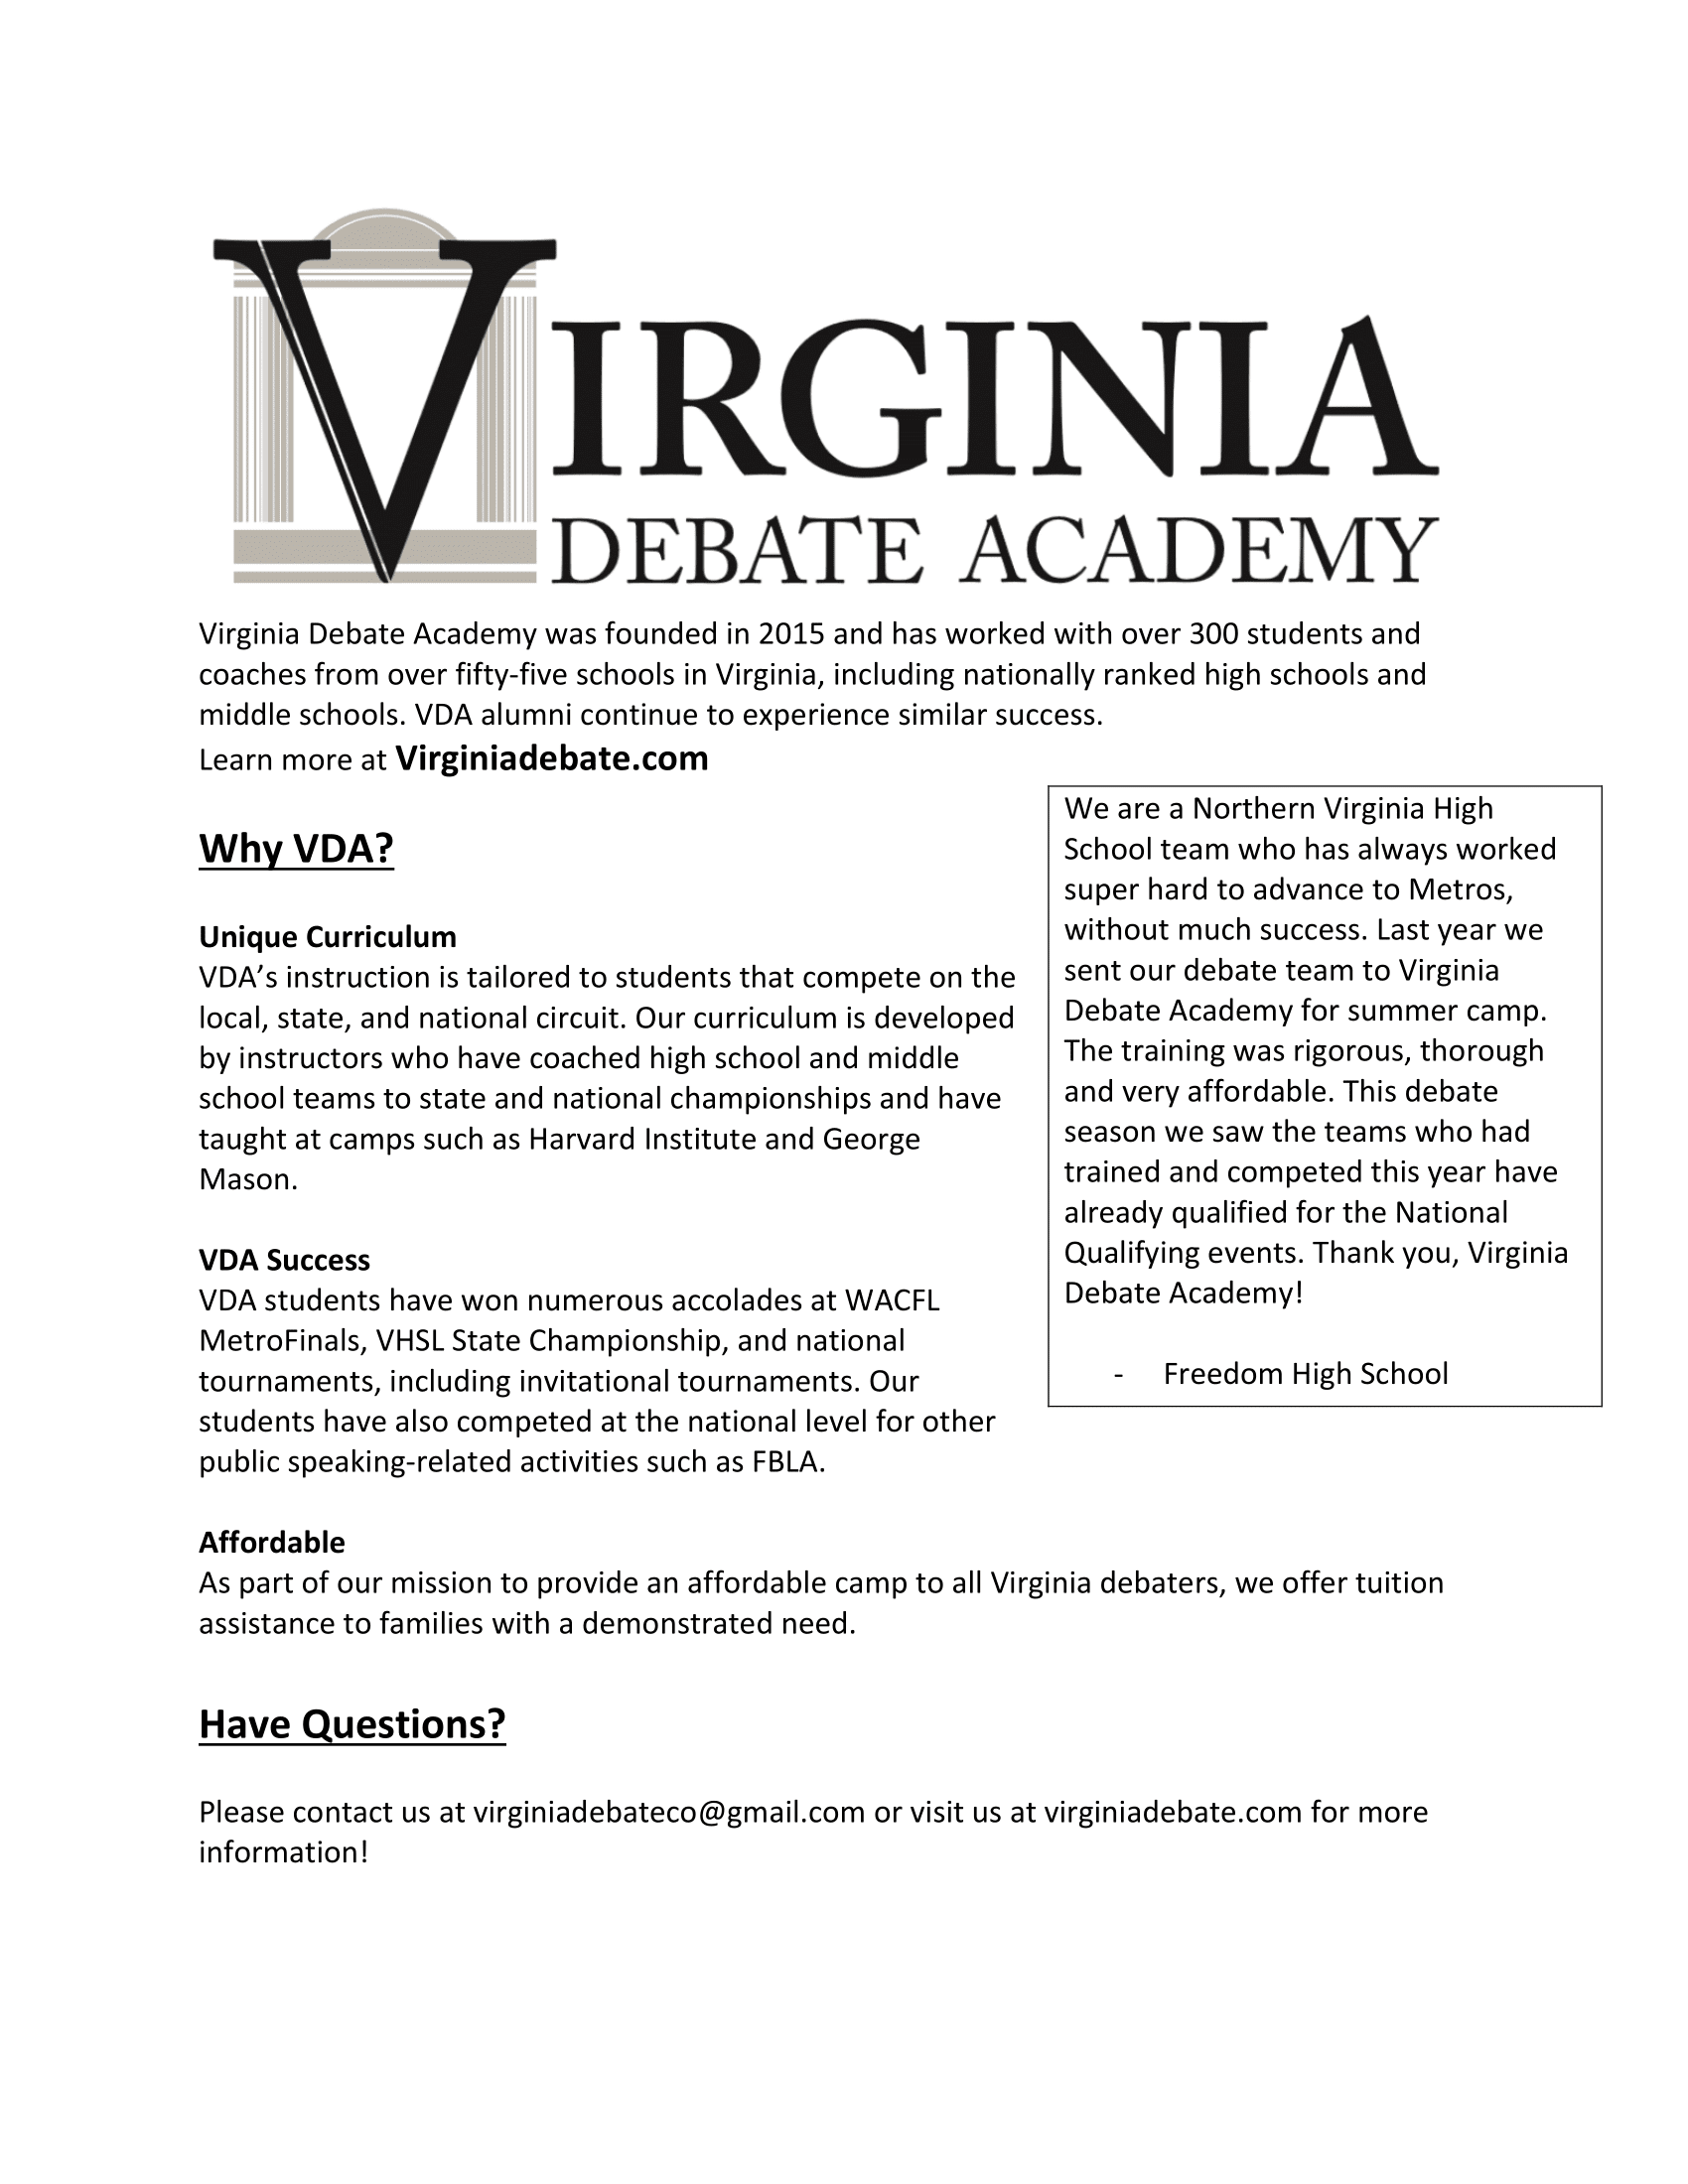 http://www.cinfoshare.org/education/virginia-debate-academy/summer-speech-and-debate-camp-2020